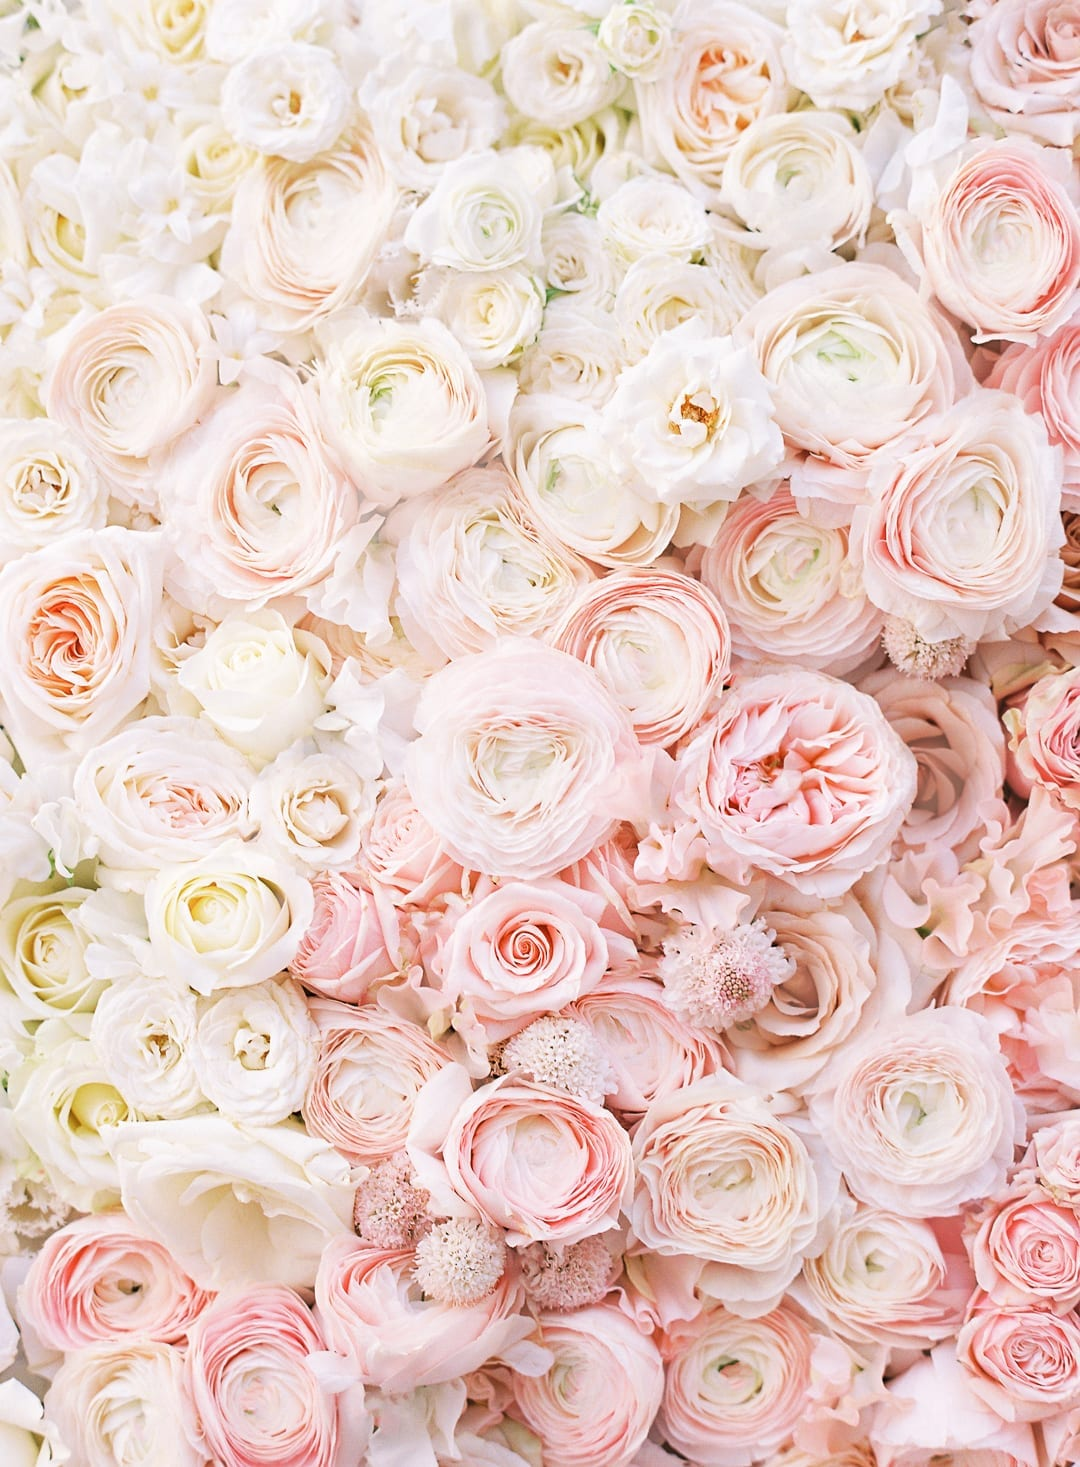 Neutral flower series pink and white tones